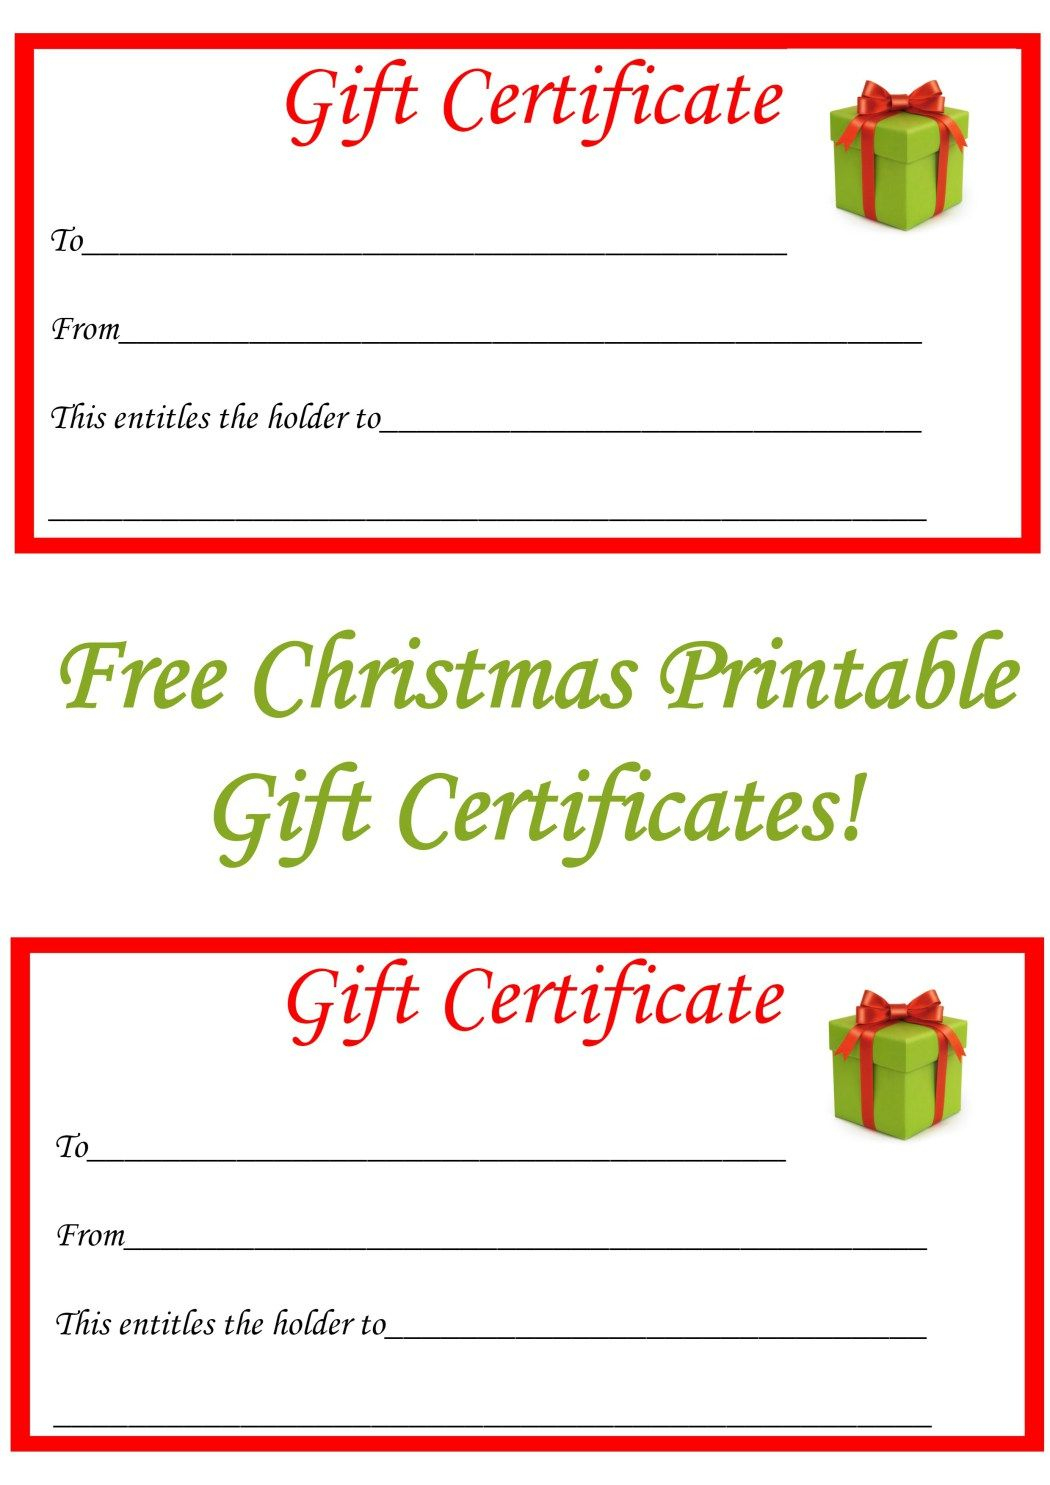 Free Christmas Printable Gift Certificates | Gift Ideas | Pinterest - Free Printable Christmas Gift Cards